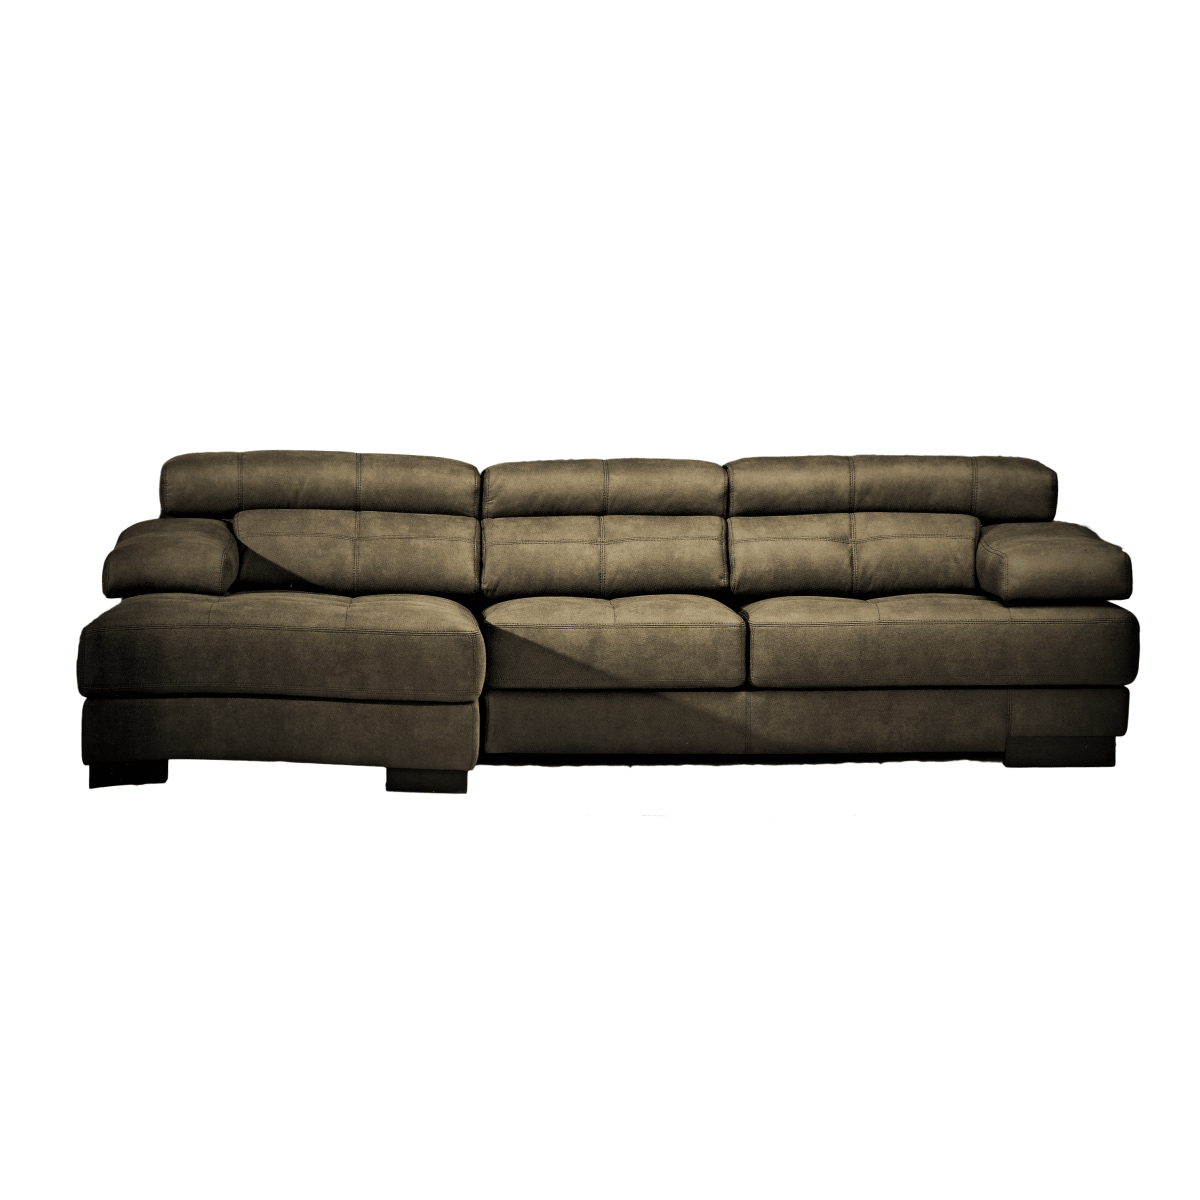 Sofa chaise longue medidas cheap with or without as well - Sofa chaise longue medidas ...